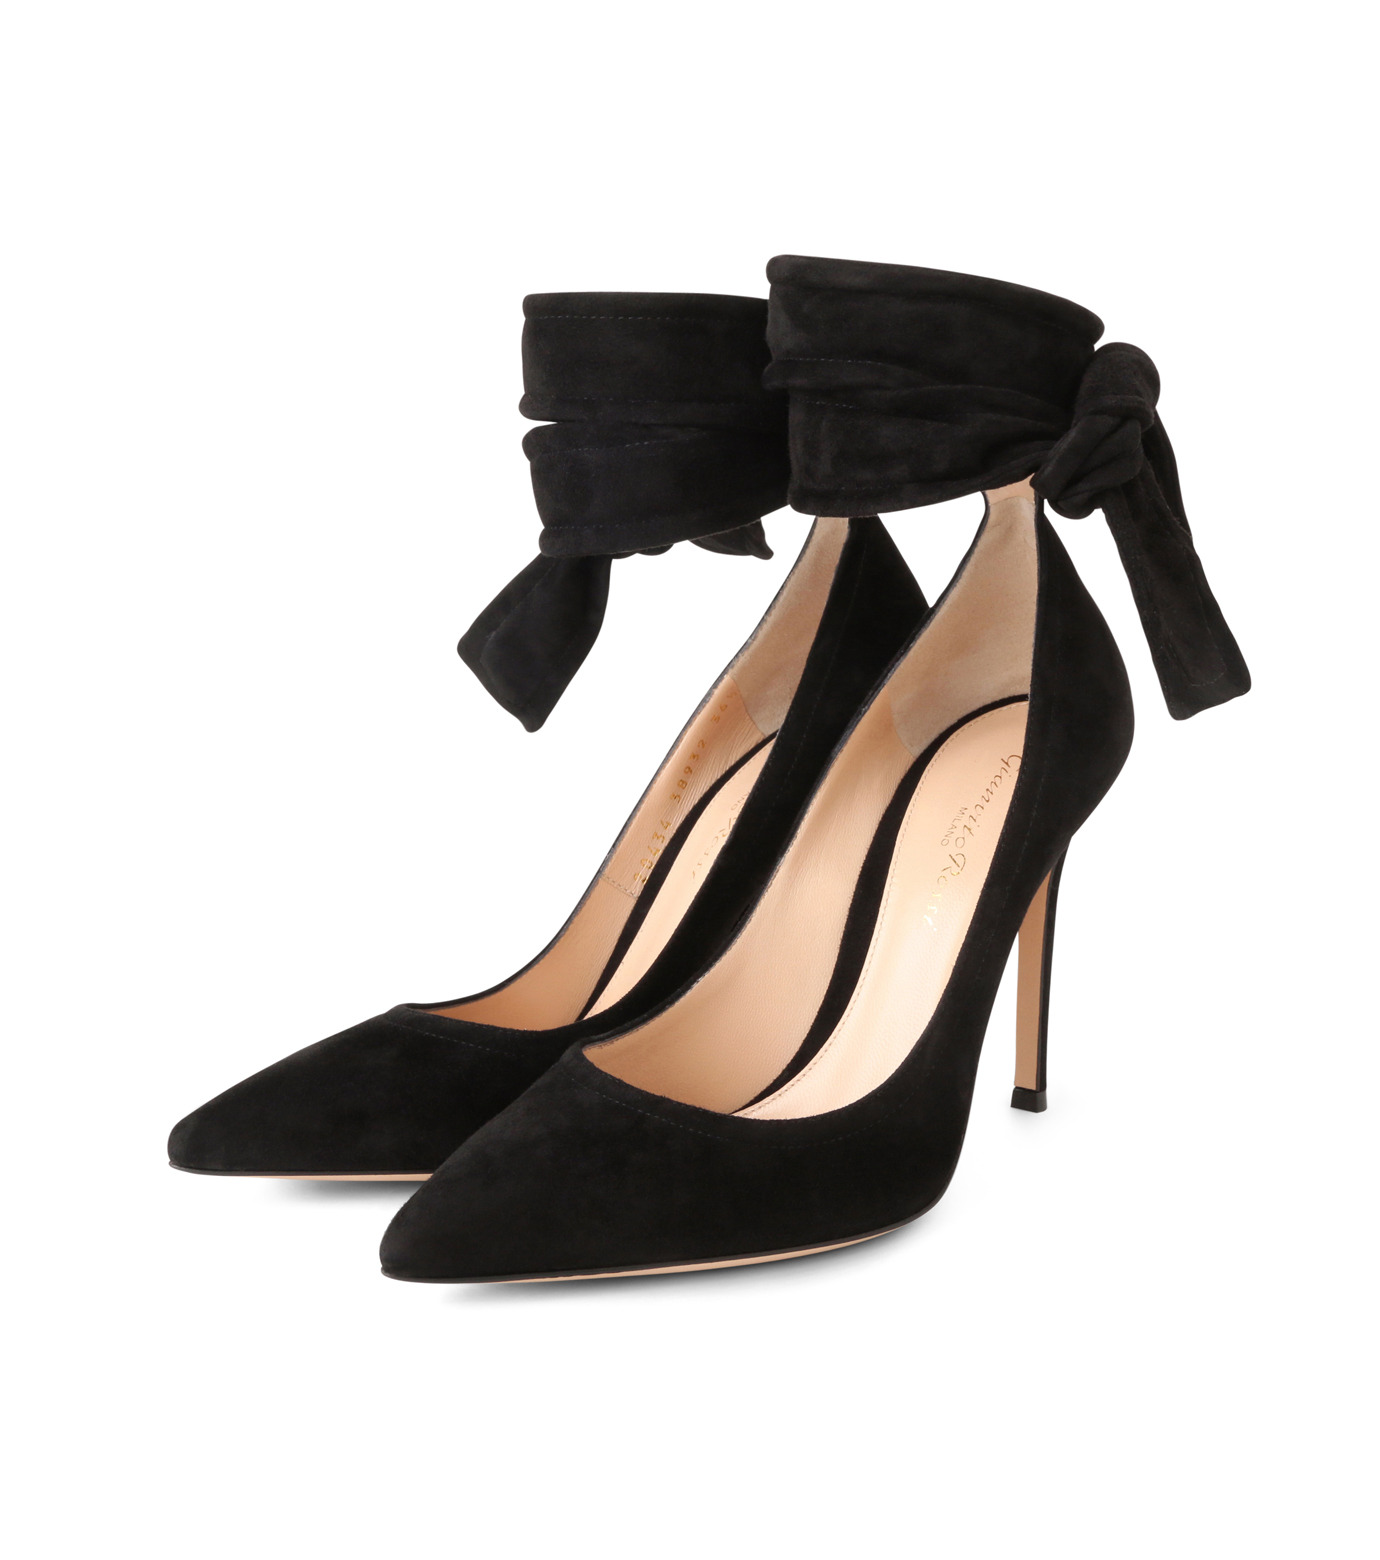 Gianvito Rossi(ジャンヴィト ロッシ)のAnkle Belted Suede Pump-BLACK(パンプス/pumps)-20434-13 拡大詳細画像3